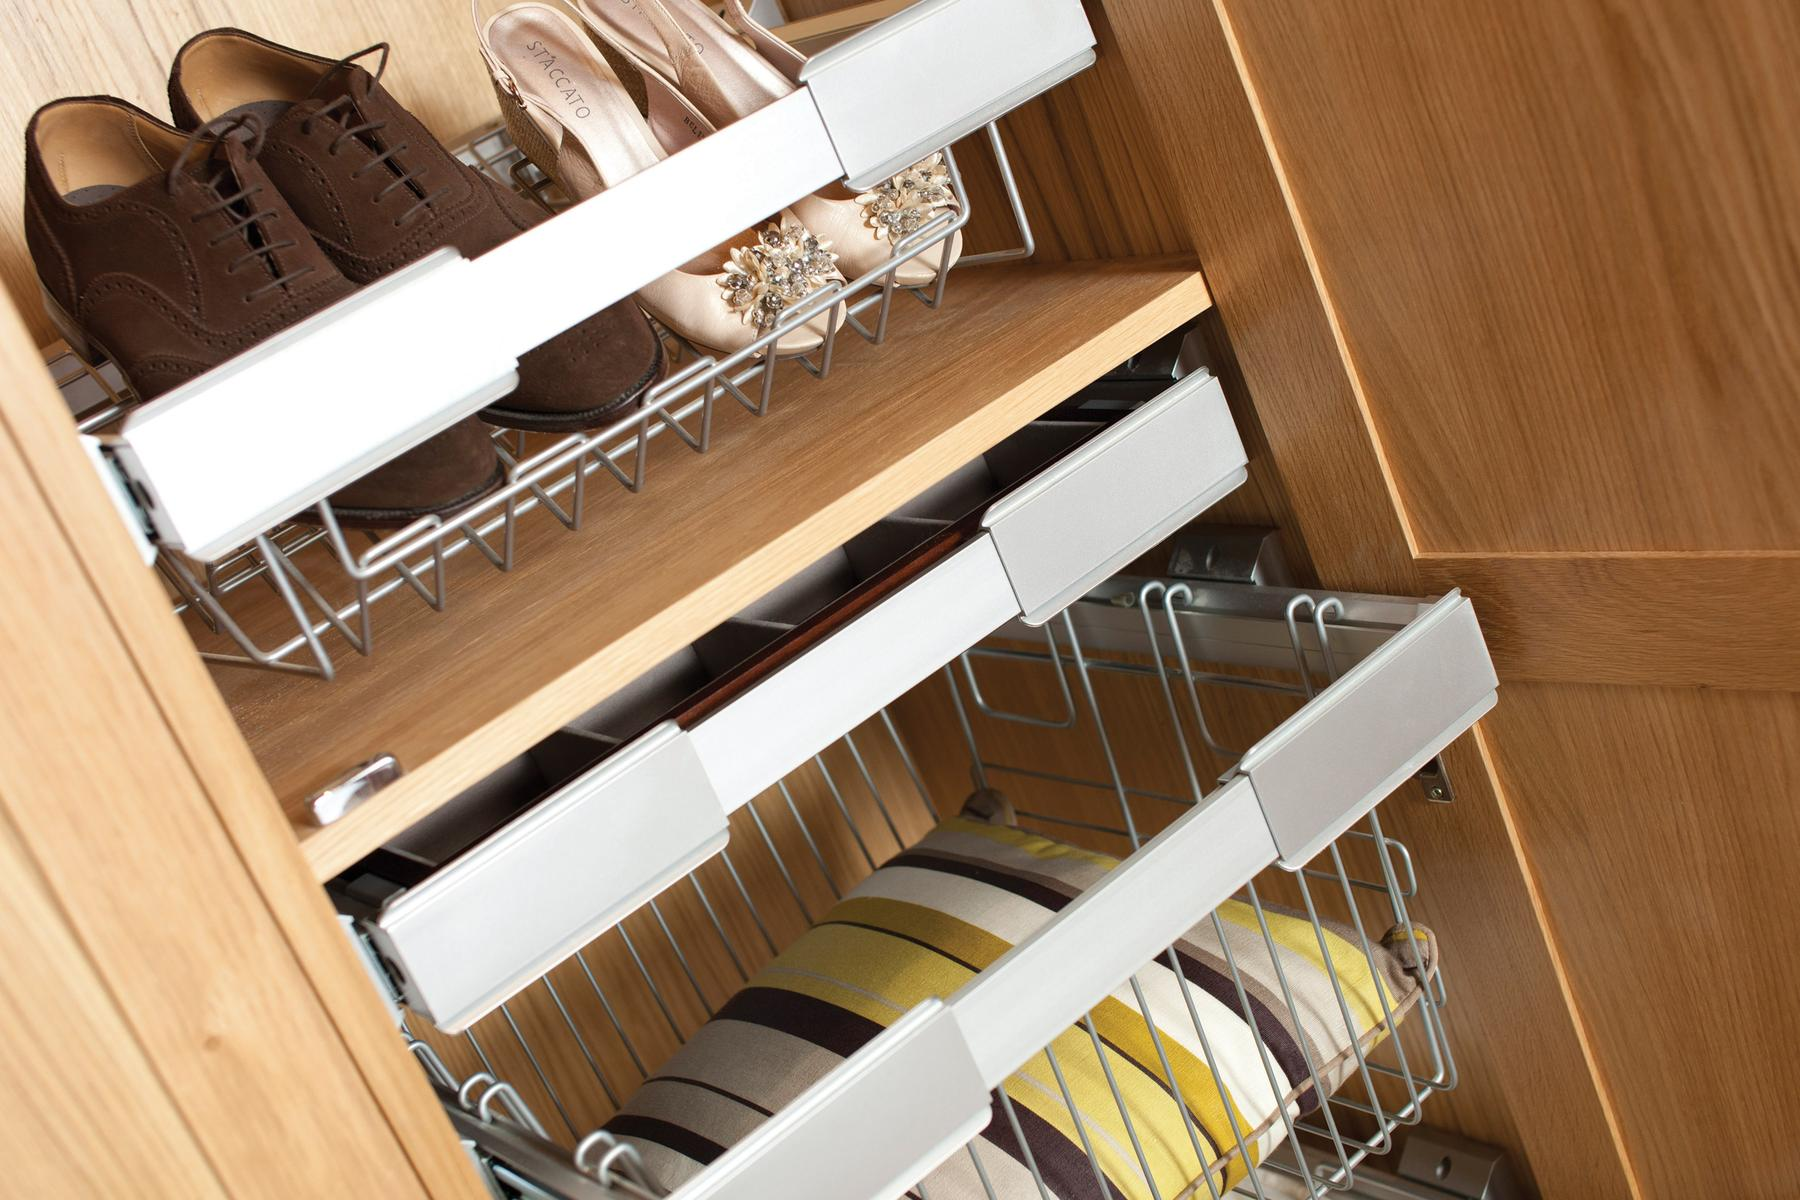 A wide range of storage options